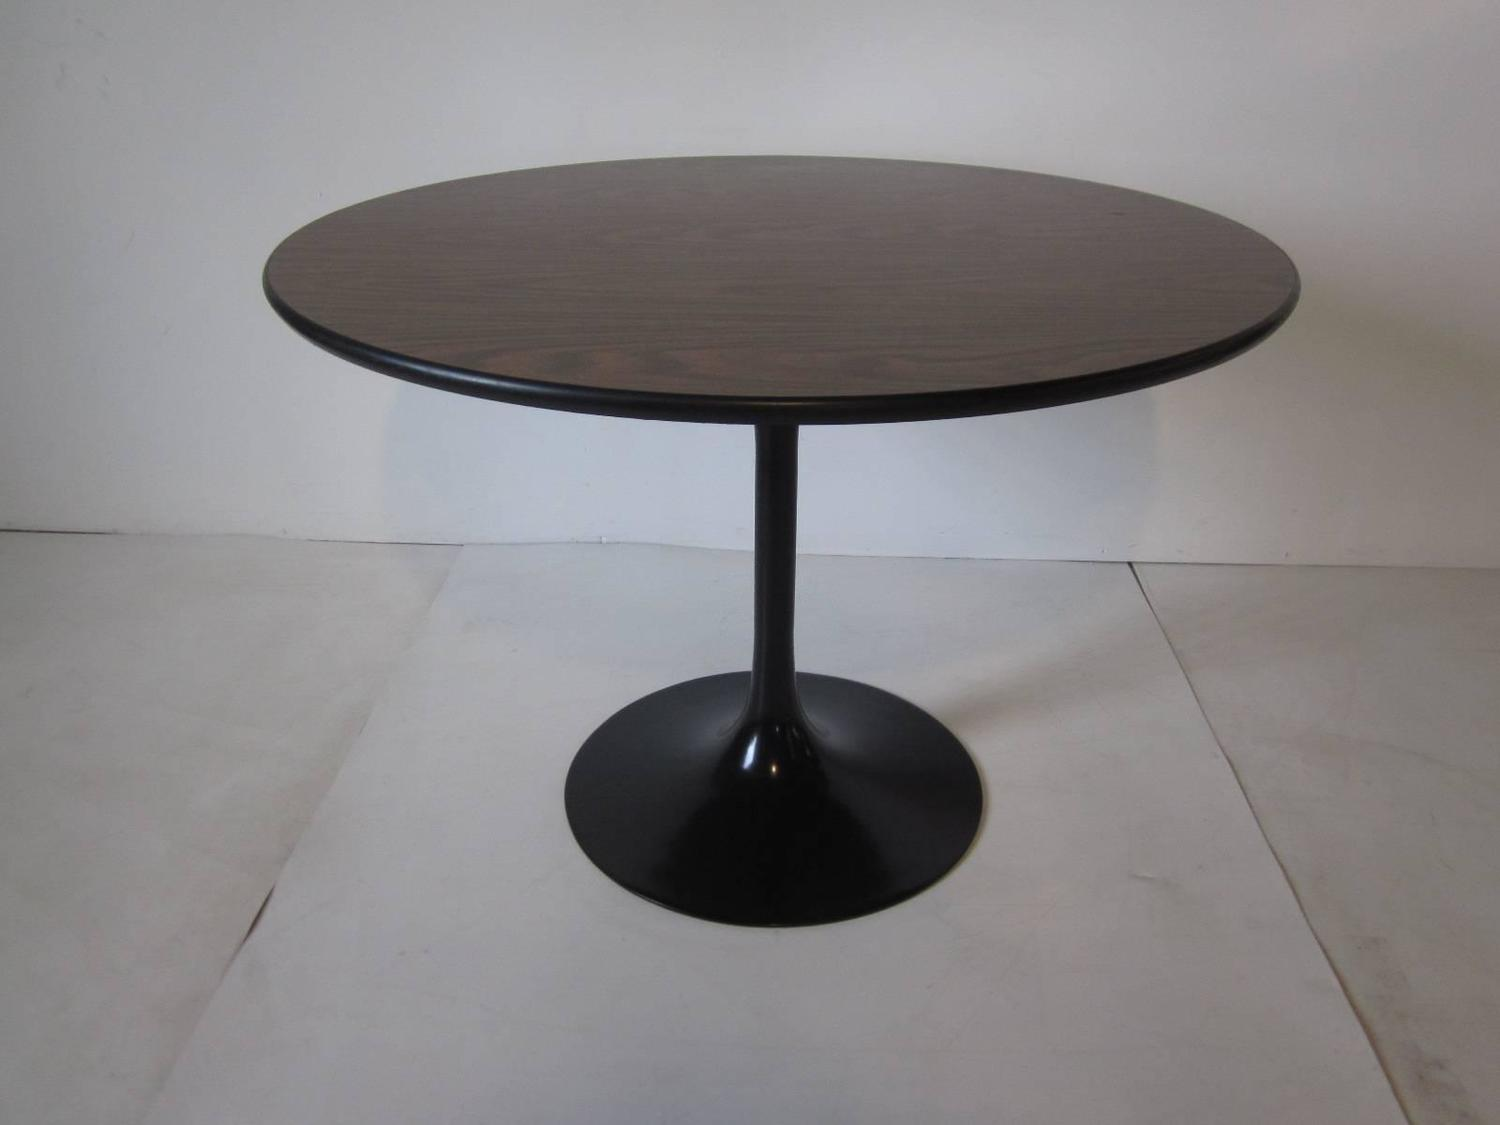 saarinen and knoll styled tulip dining table for sale at 1stdibs